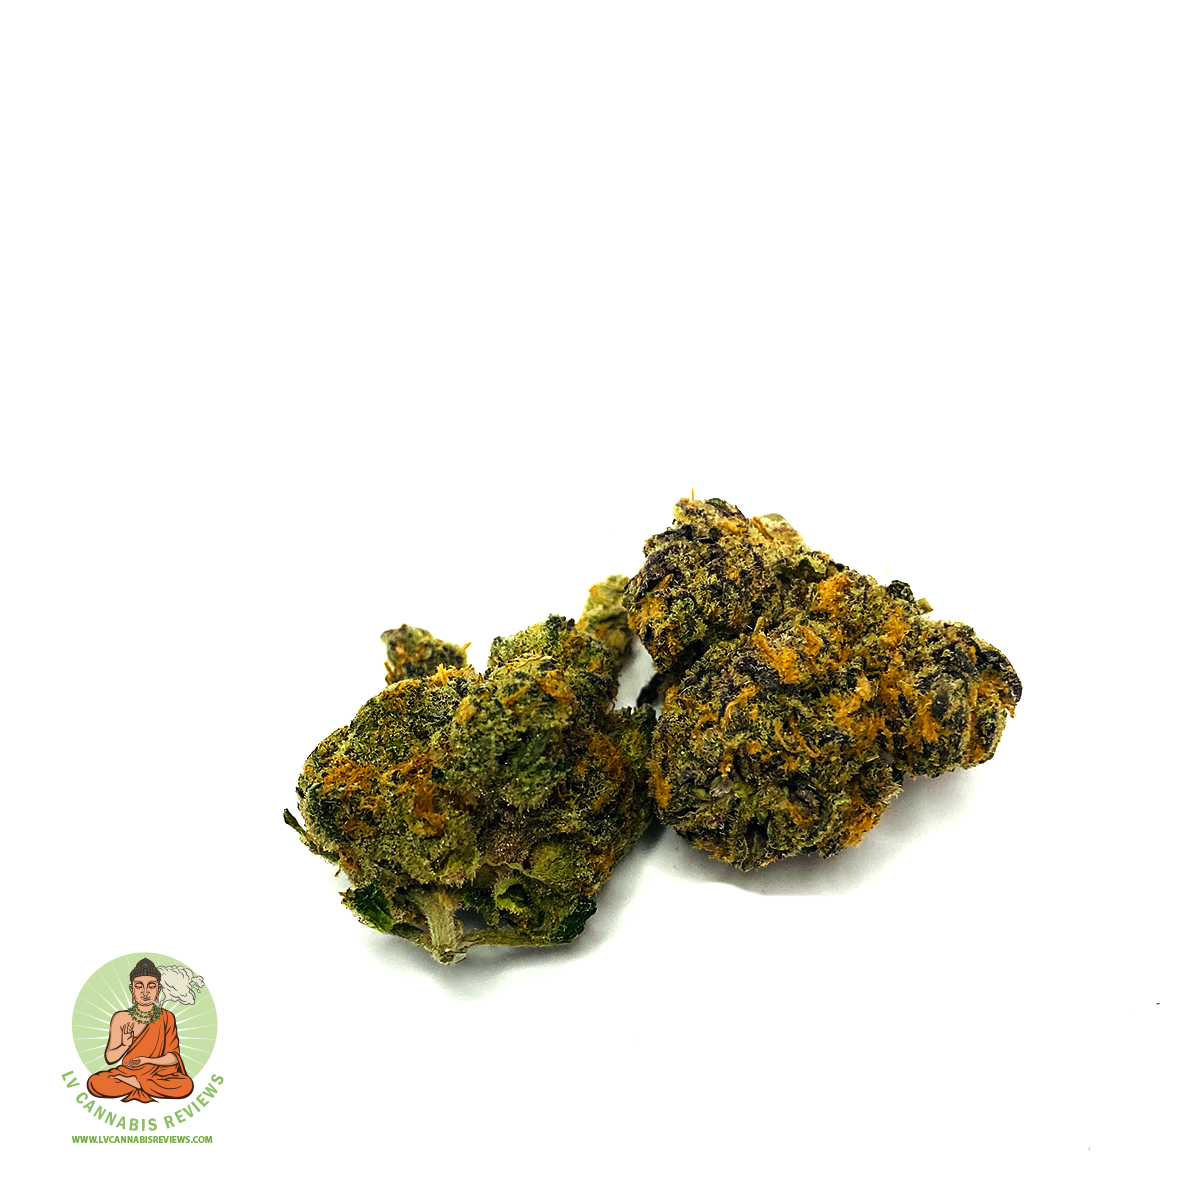 NevadaPURE LLC Cultivation White Tahoe Cookies Review November 2019 The Dispensary